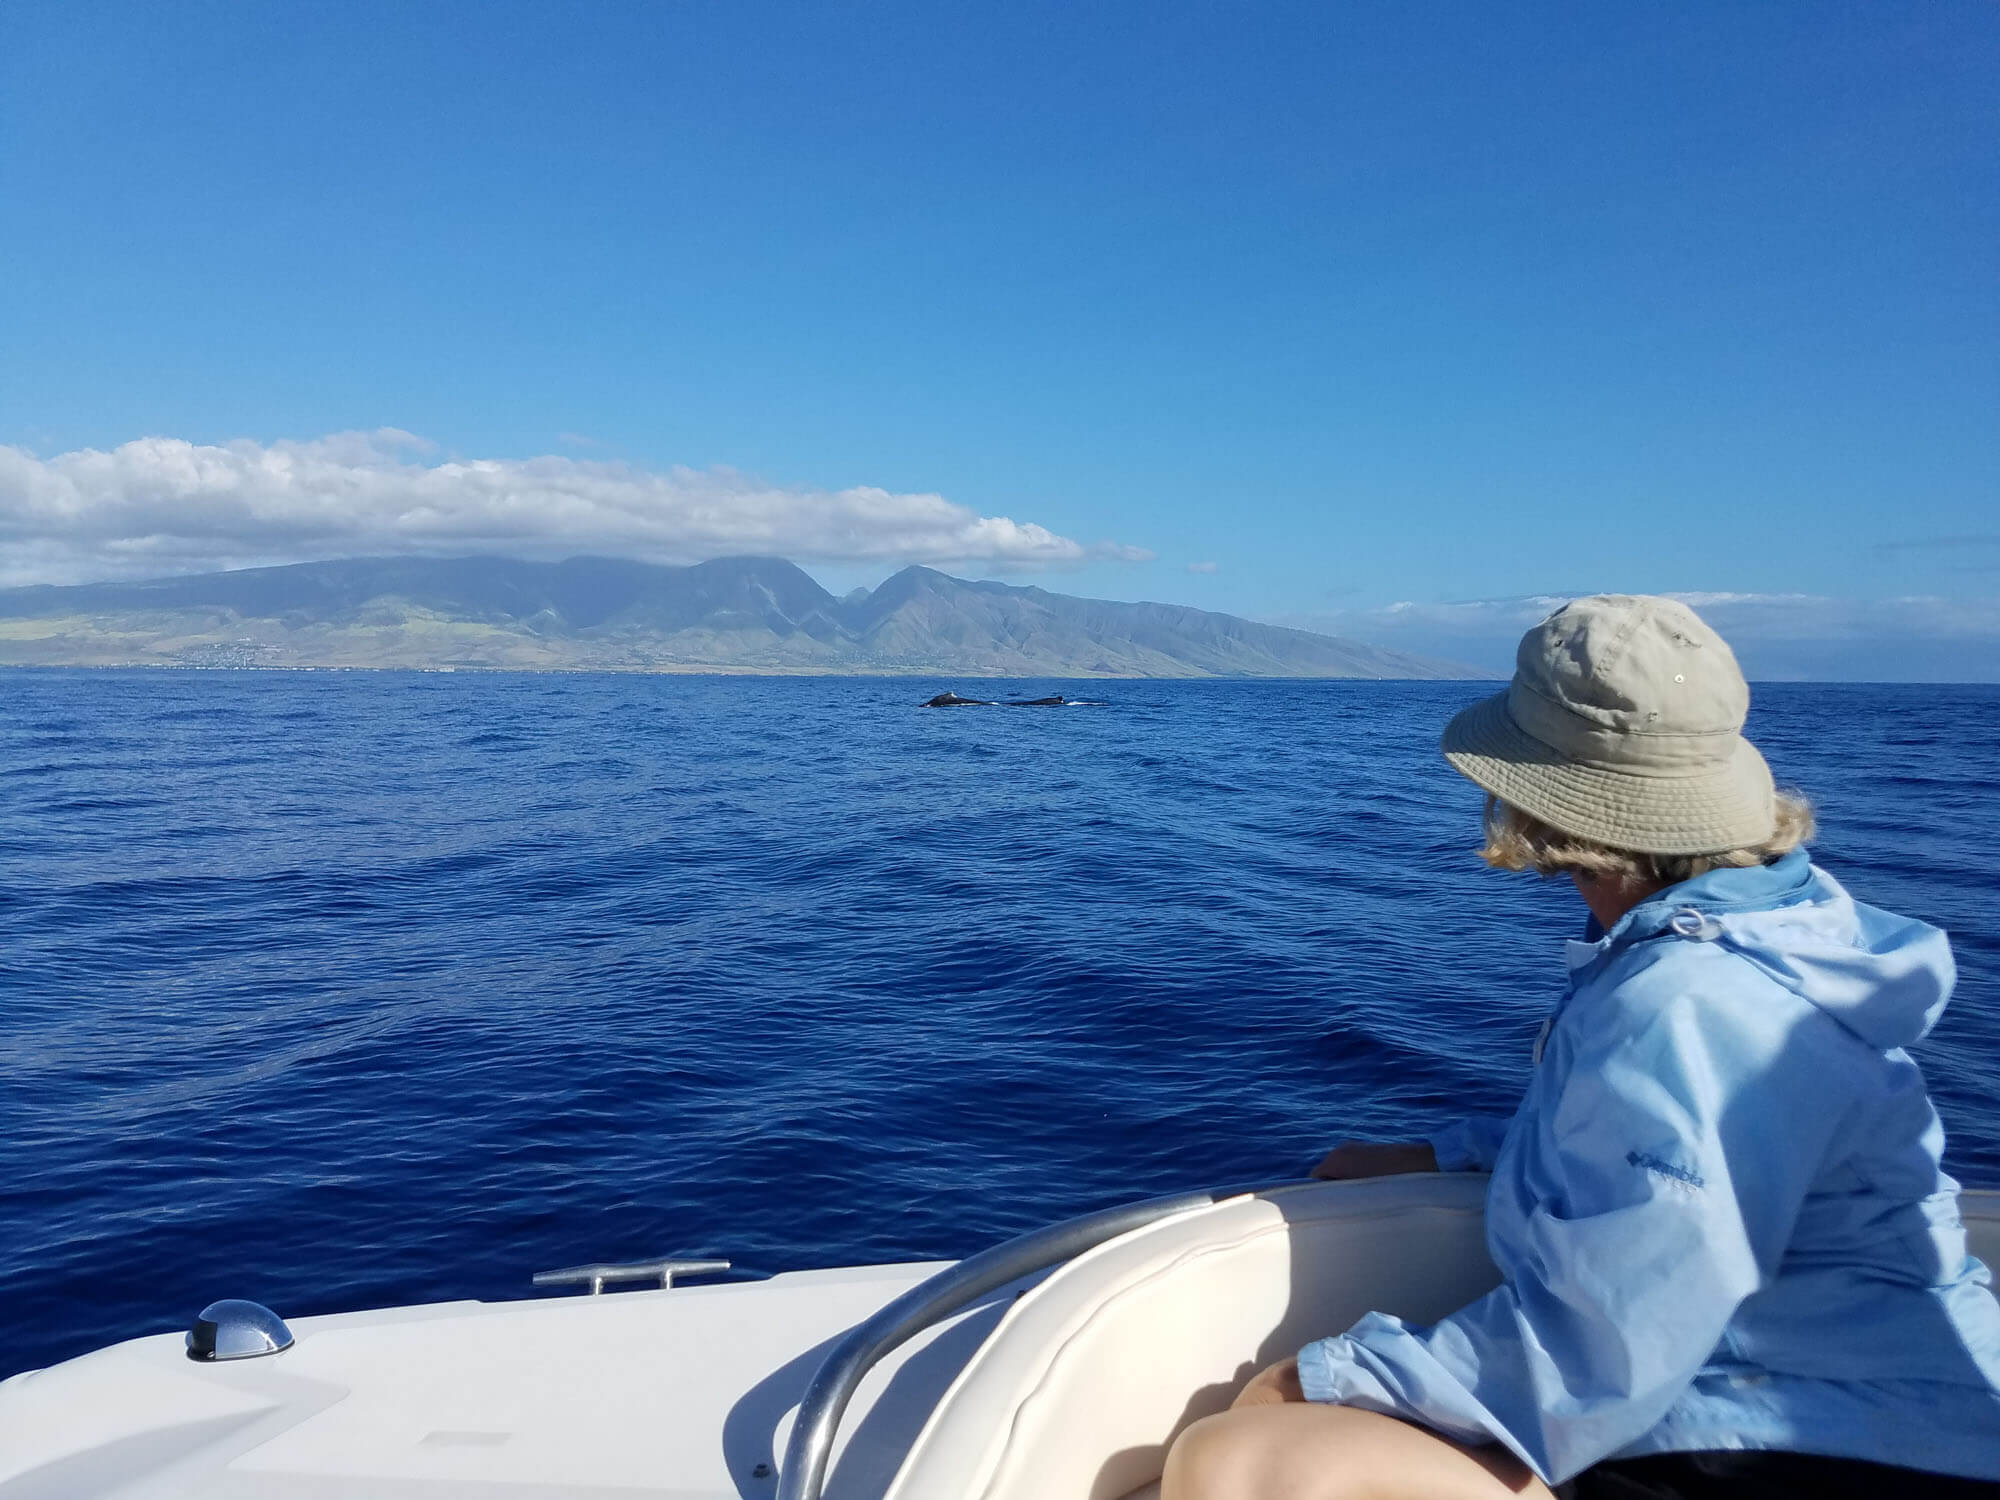 Boat Tours on the Island of Maui